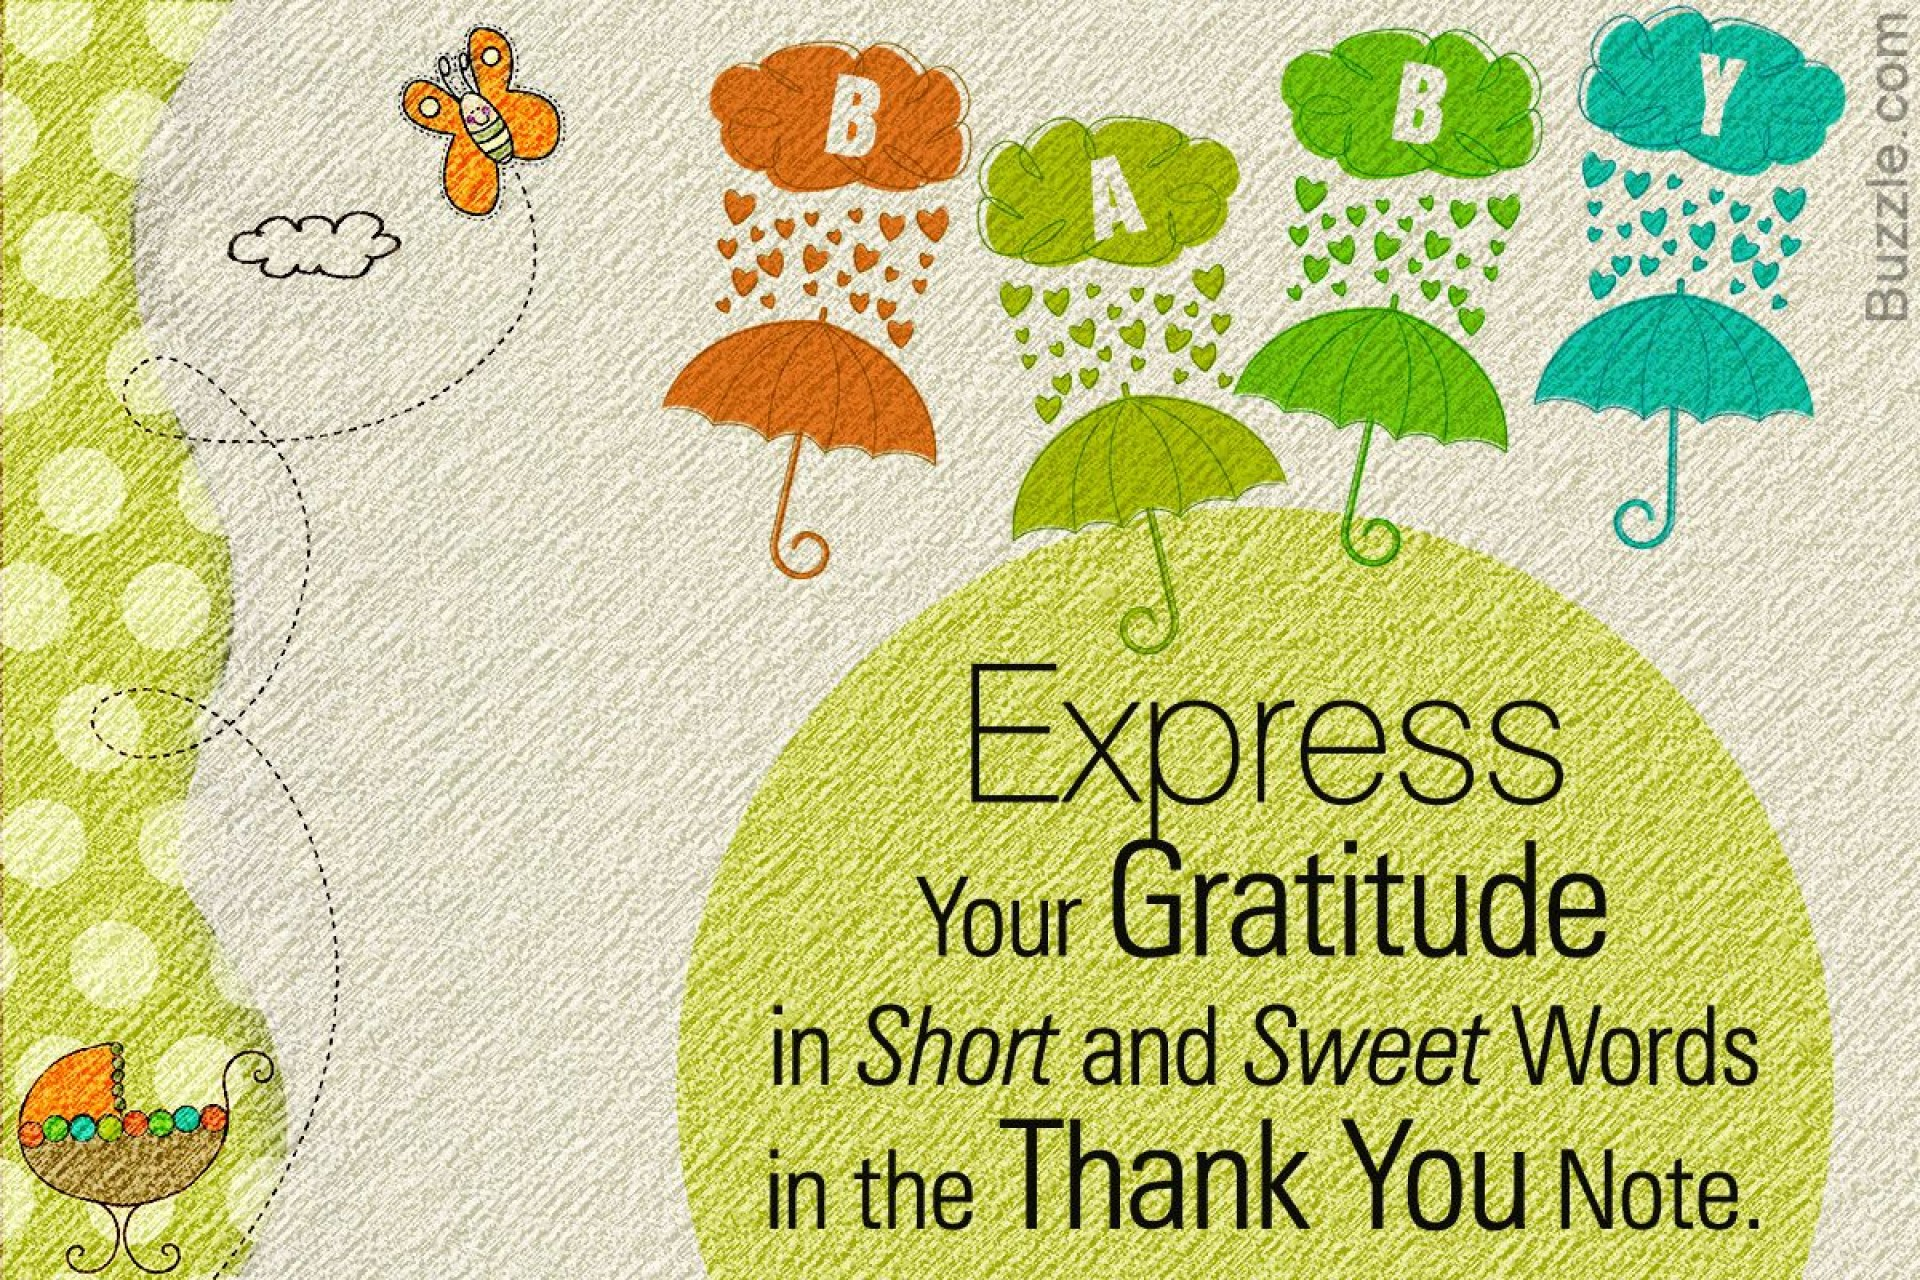 002 Outstanding Thank You Card Wording For Baby Shower Group Gift High Def 1920